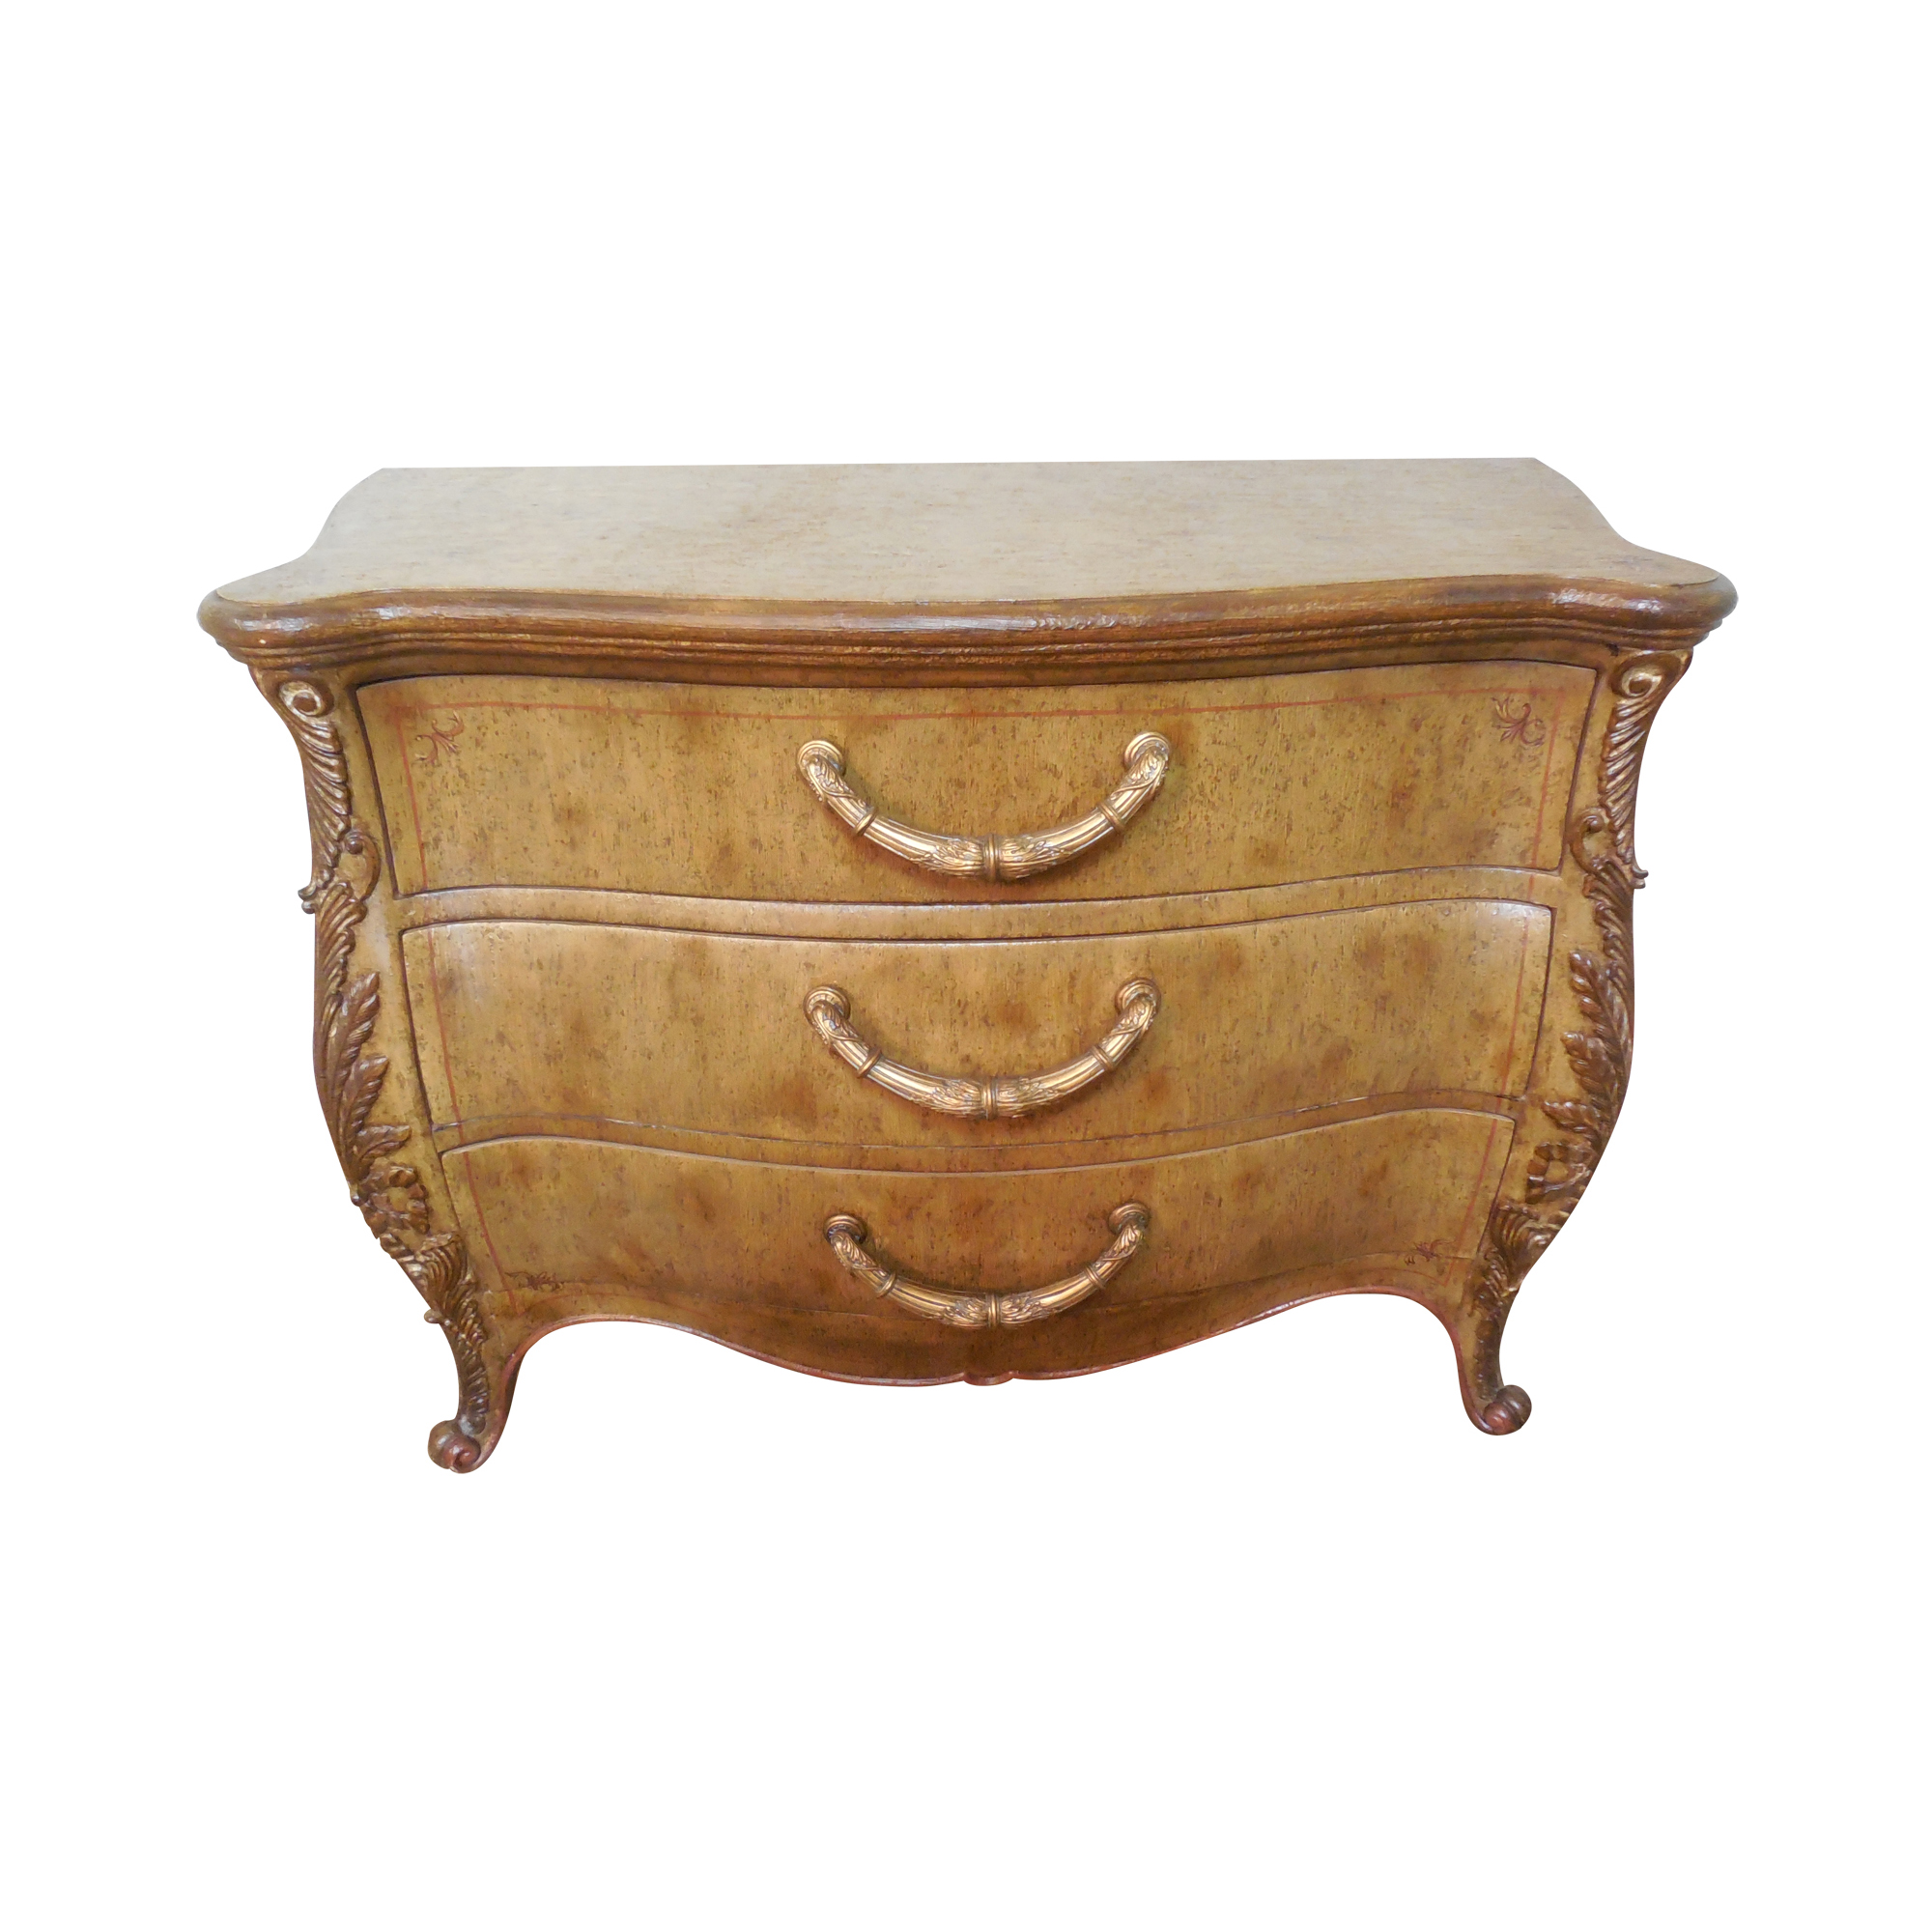 The Platt Collections Louis XV Hand Crafted Chest